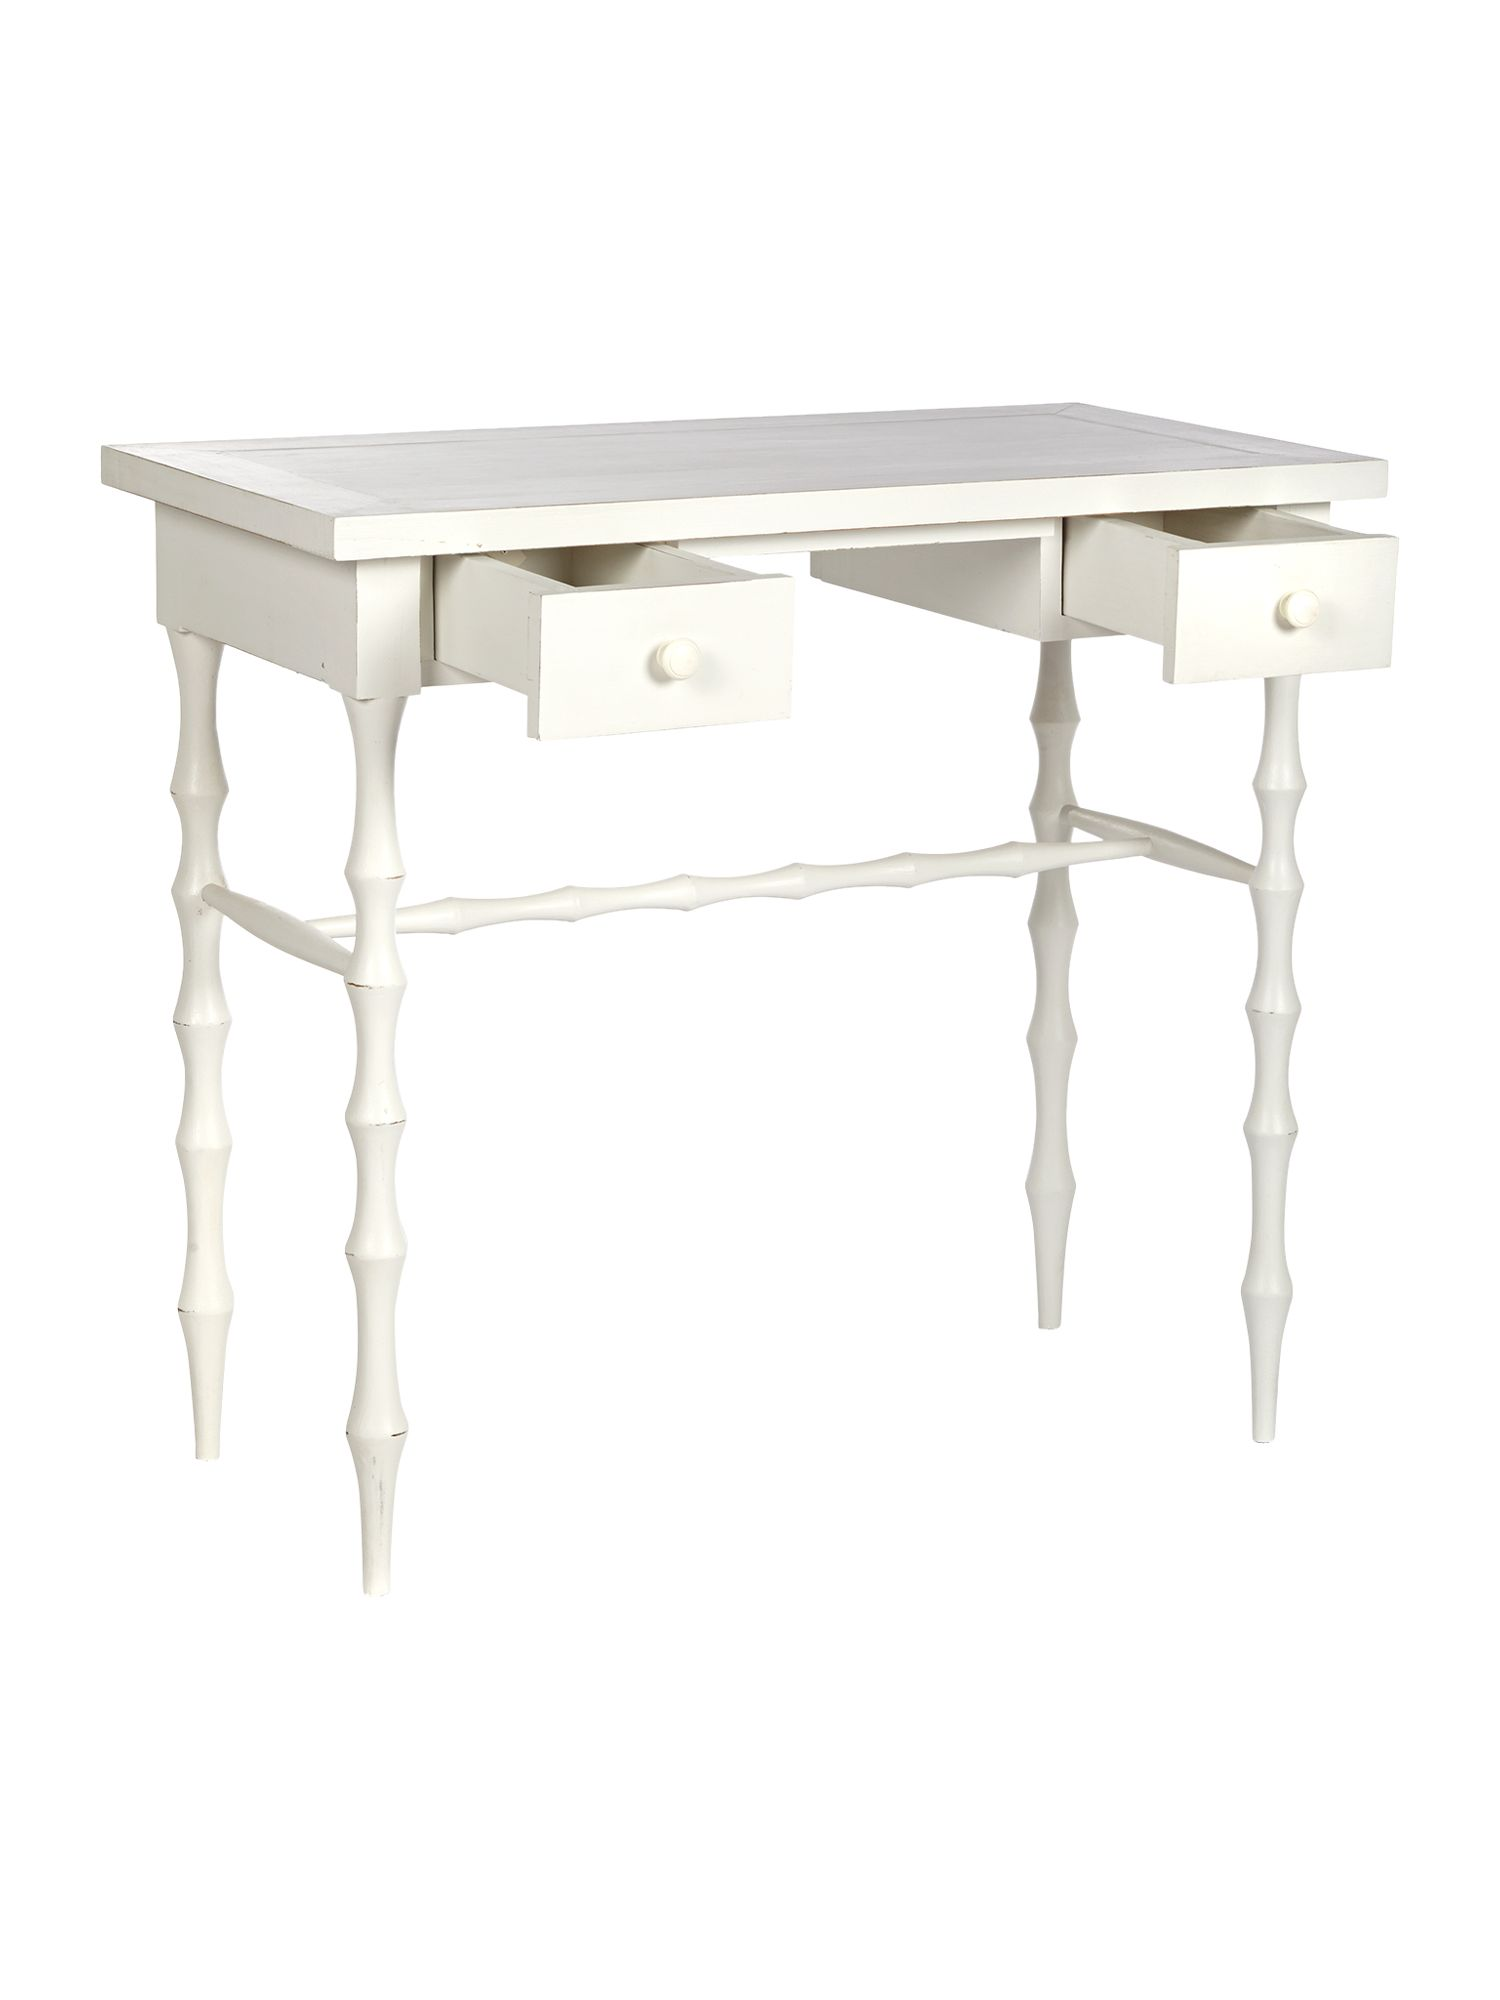 Hailey dressing table